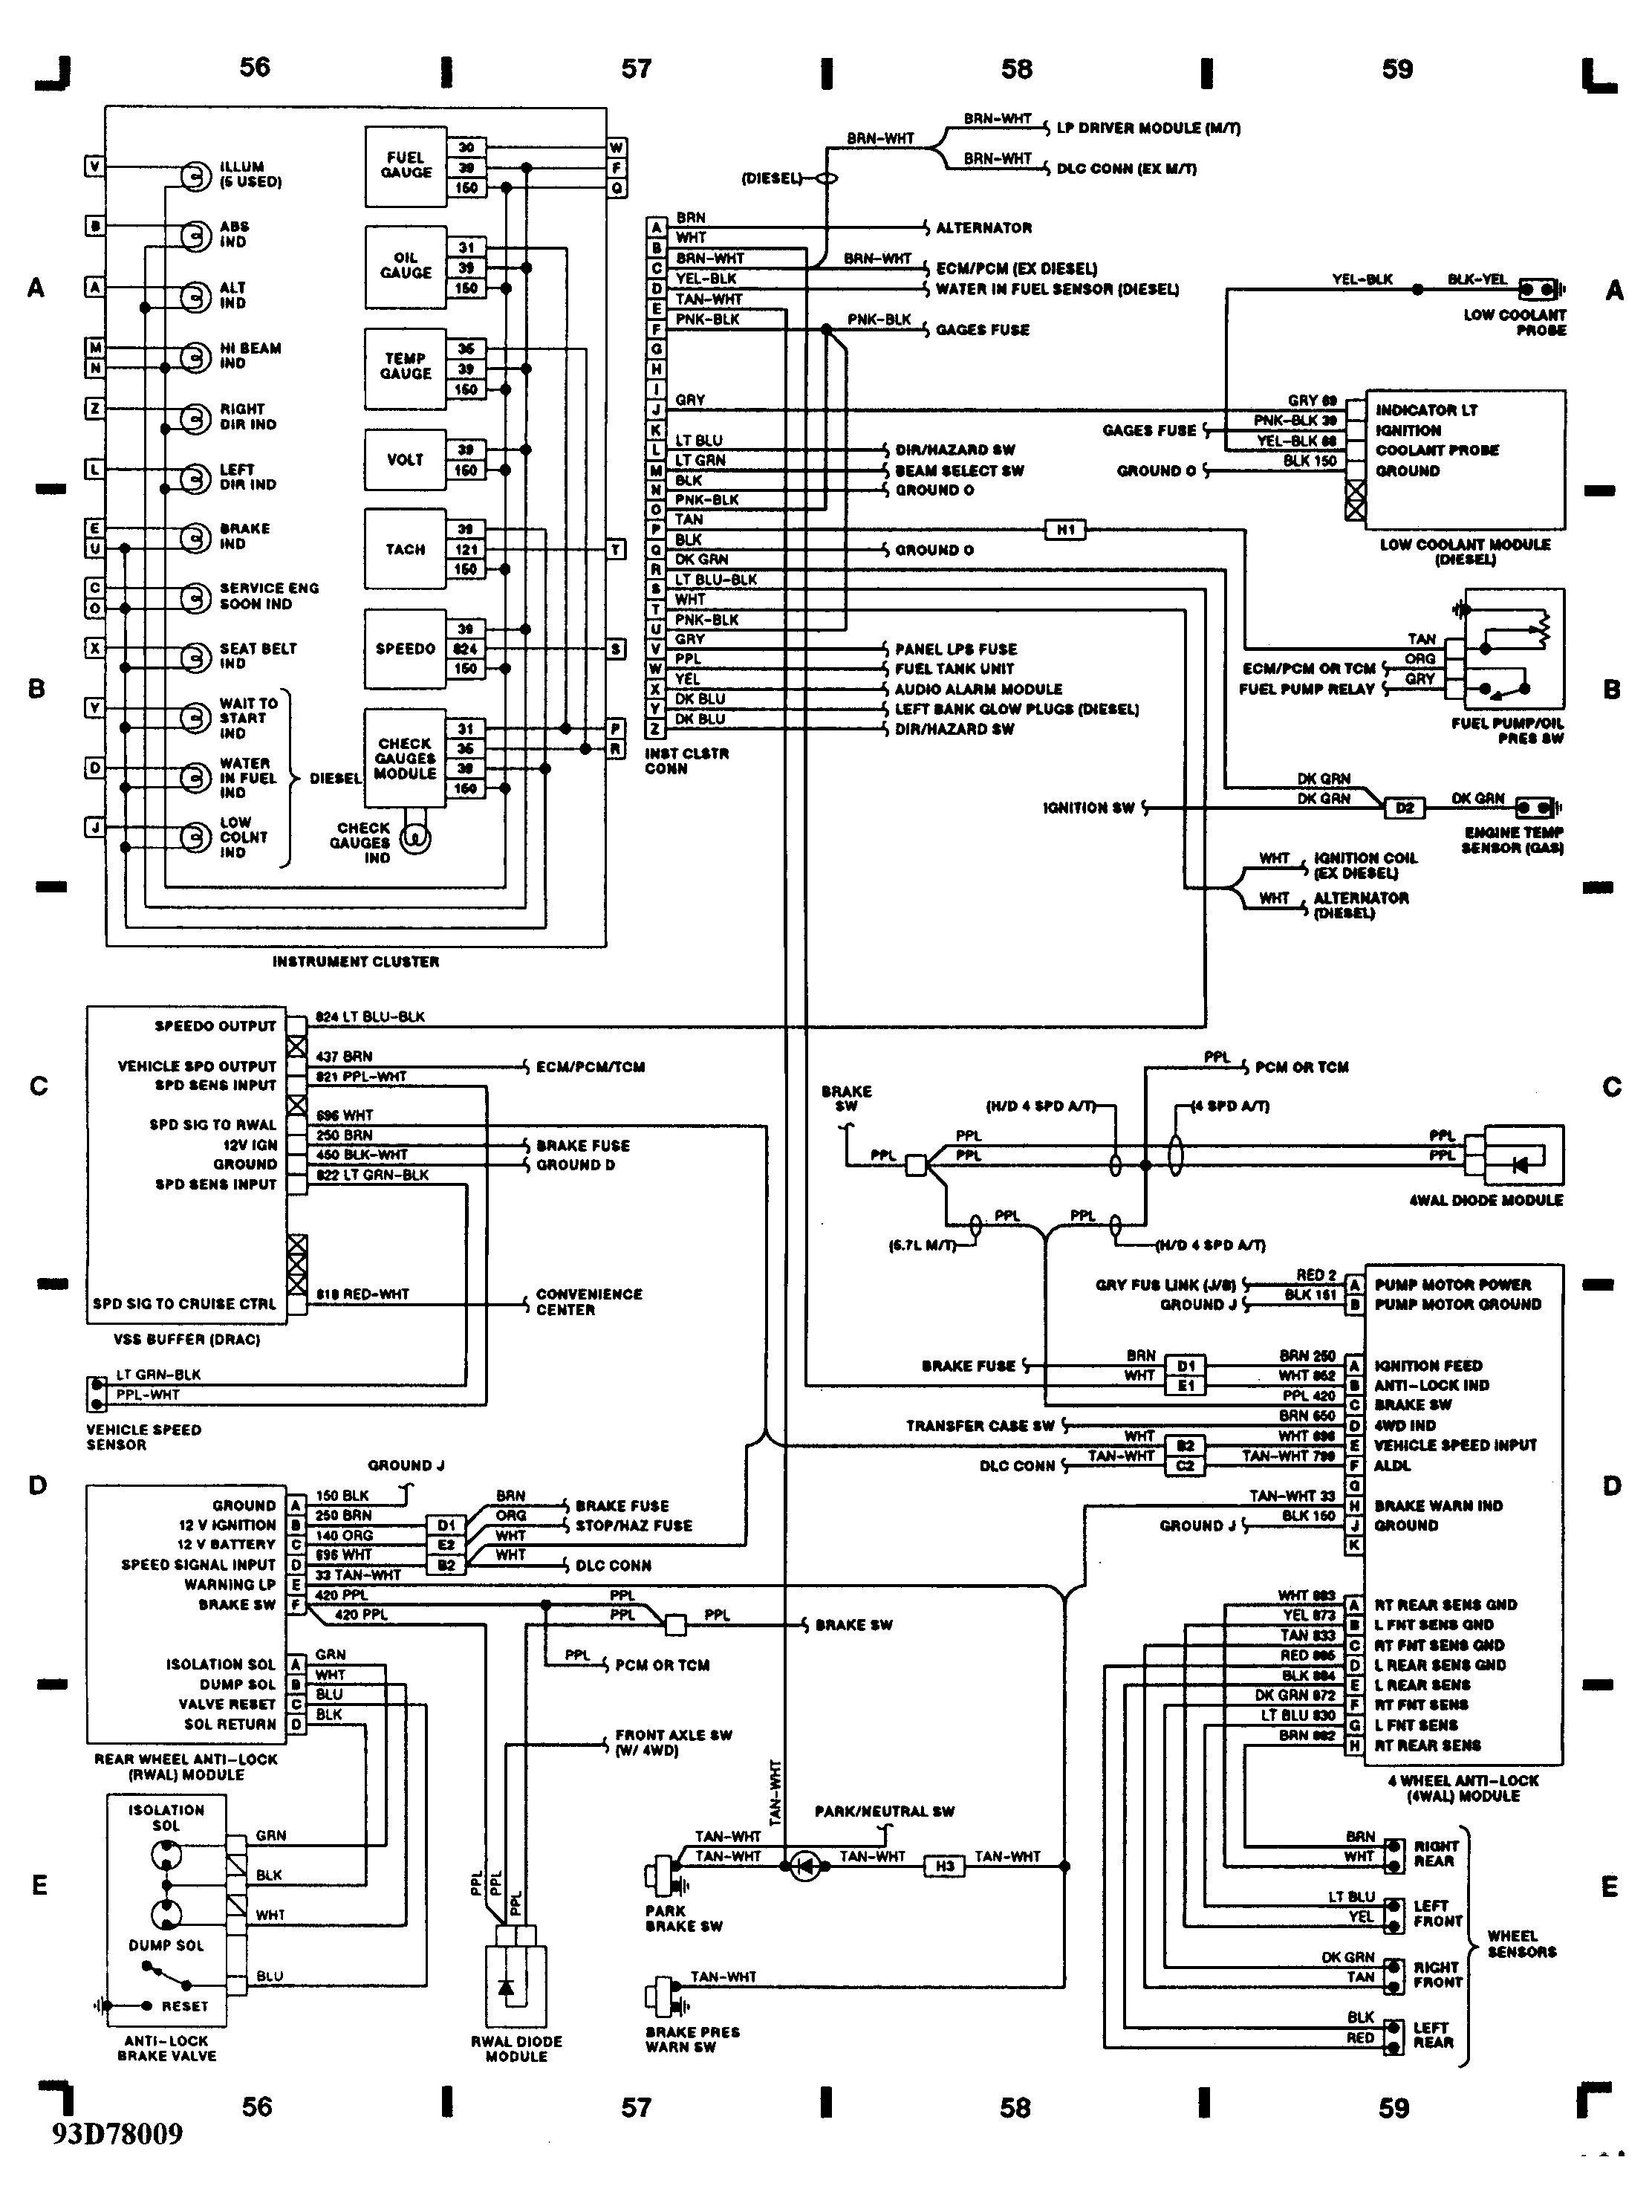 1993 chevy lumina cooling system wiring diagram all wiring diagram 1993 Chevy 1500 Heating Diagram